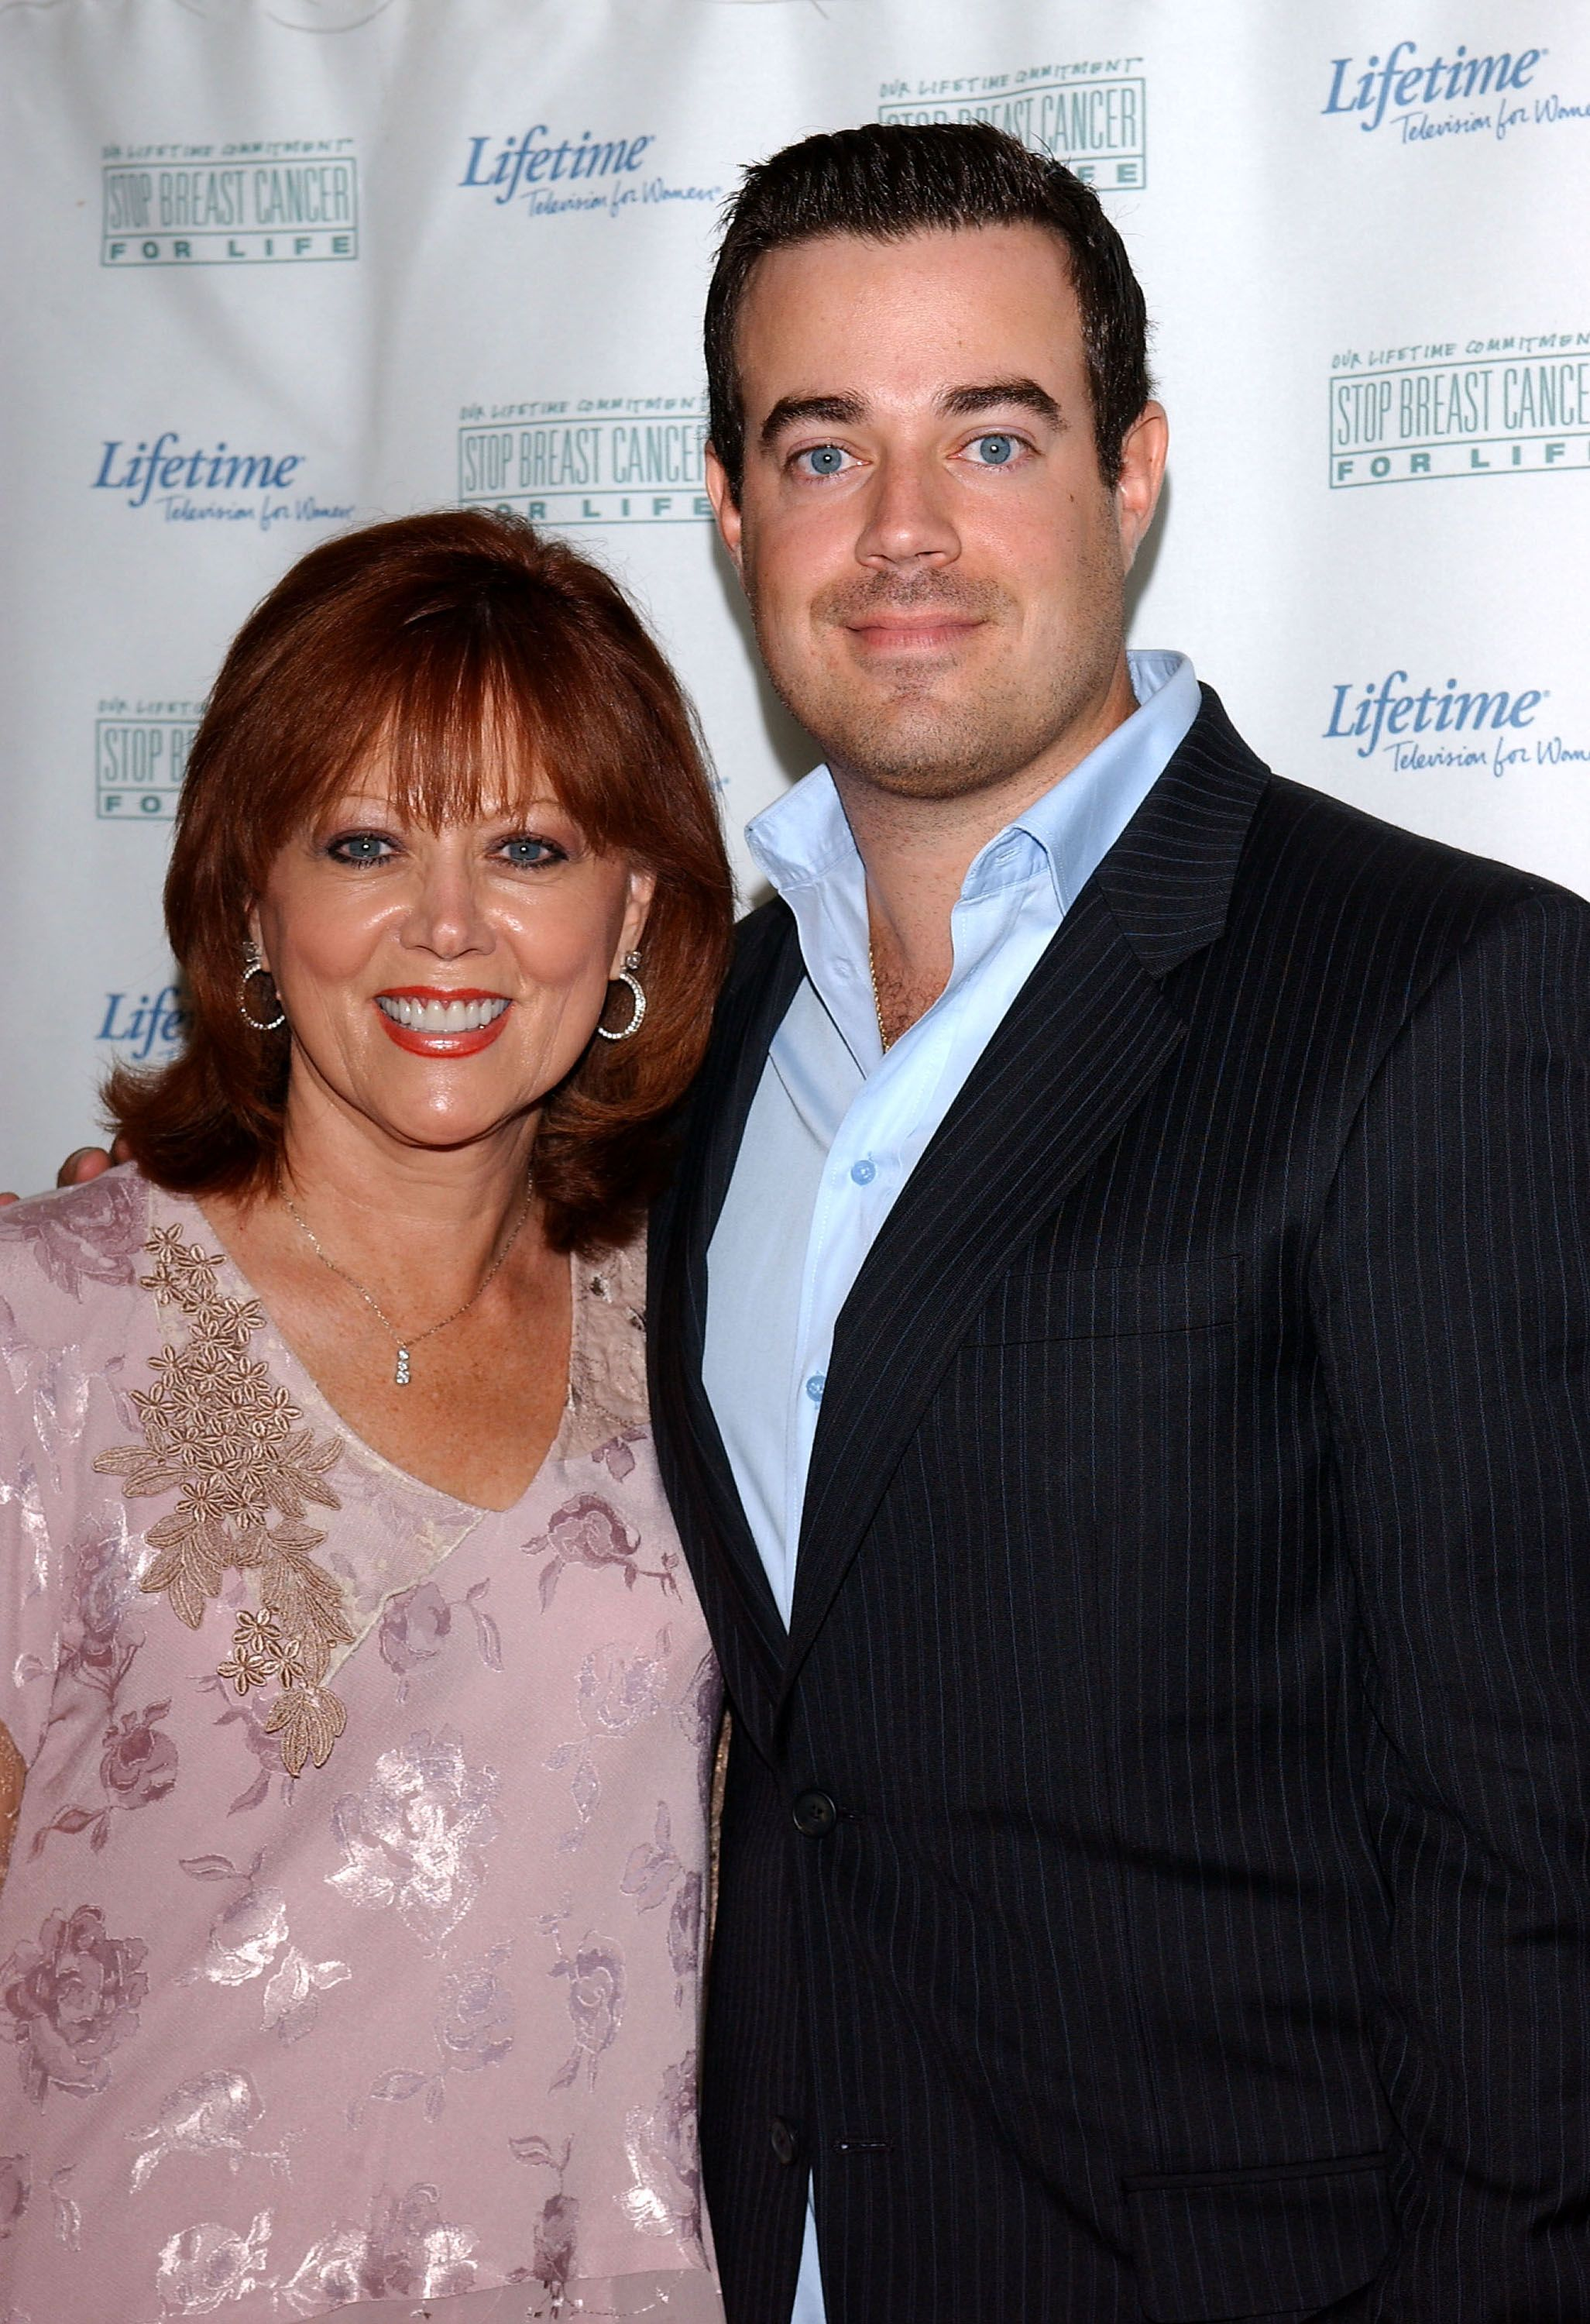 "Carson Daly and his mother Pattie Daly Caruso at the Lifetime Television ""Breast Cancer Heroes Luncheon"" in Los Angeles 